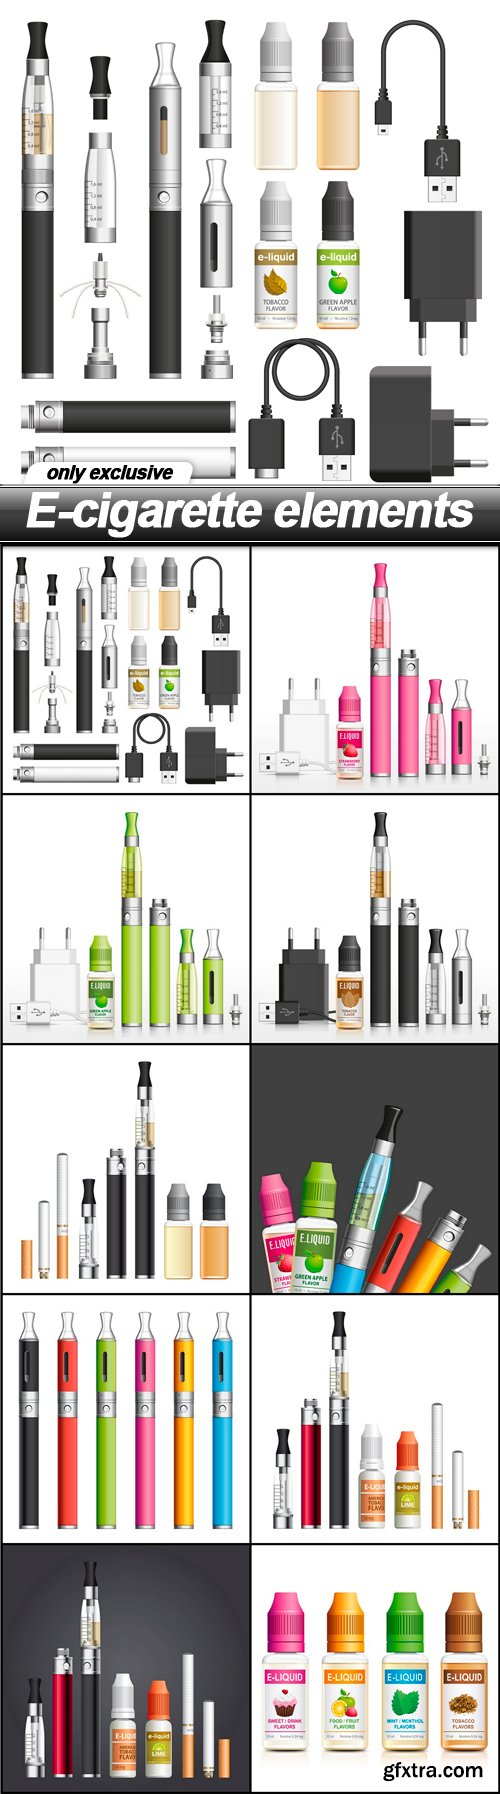 E-cigarette elements - 10 EPS